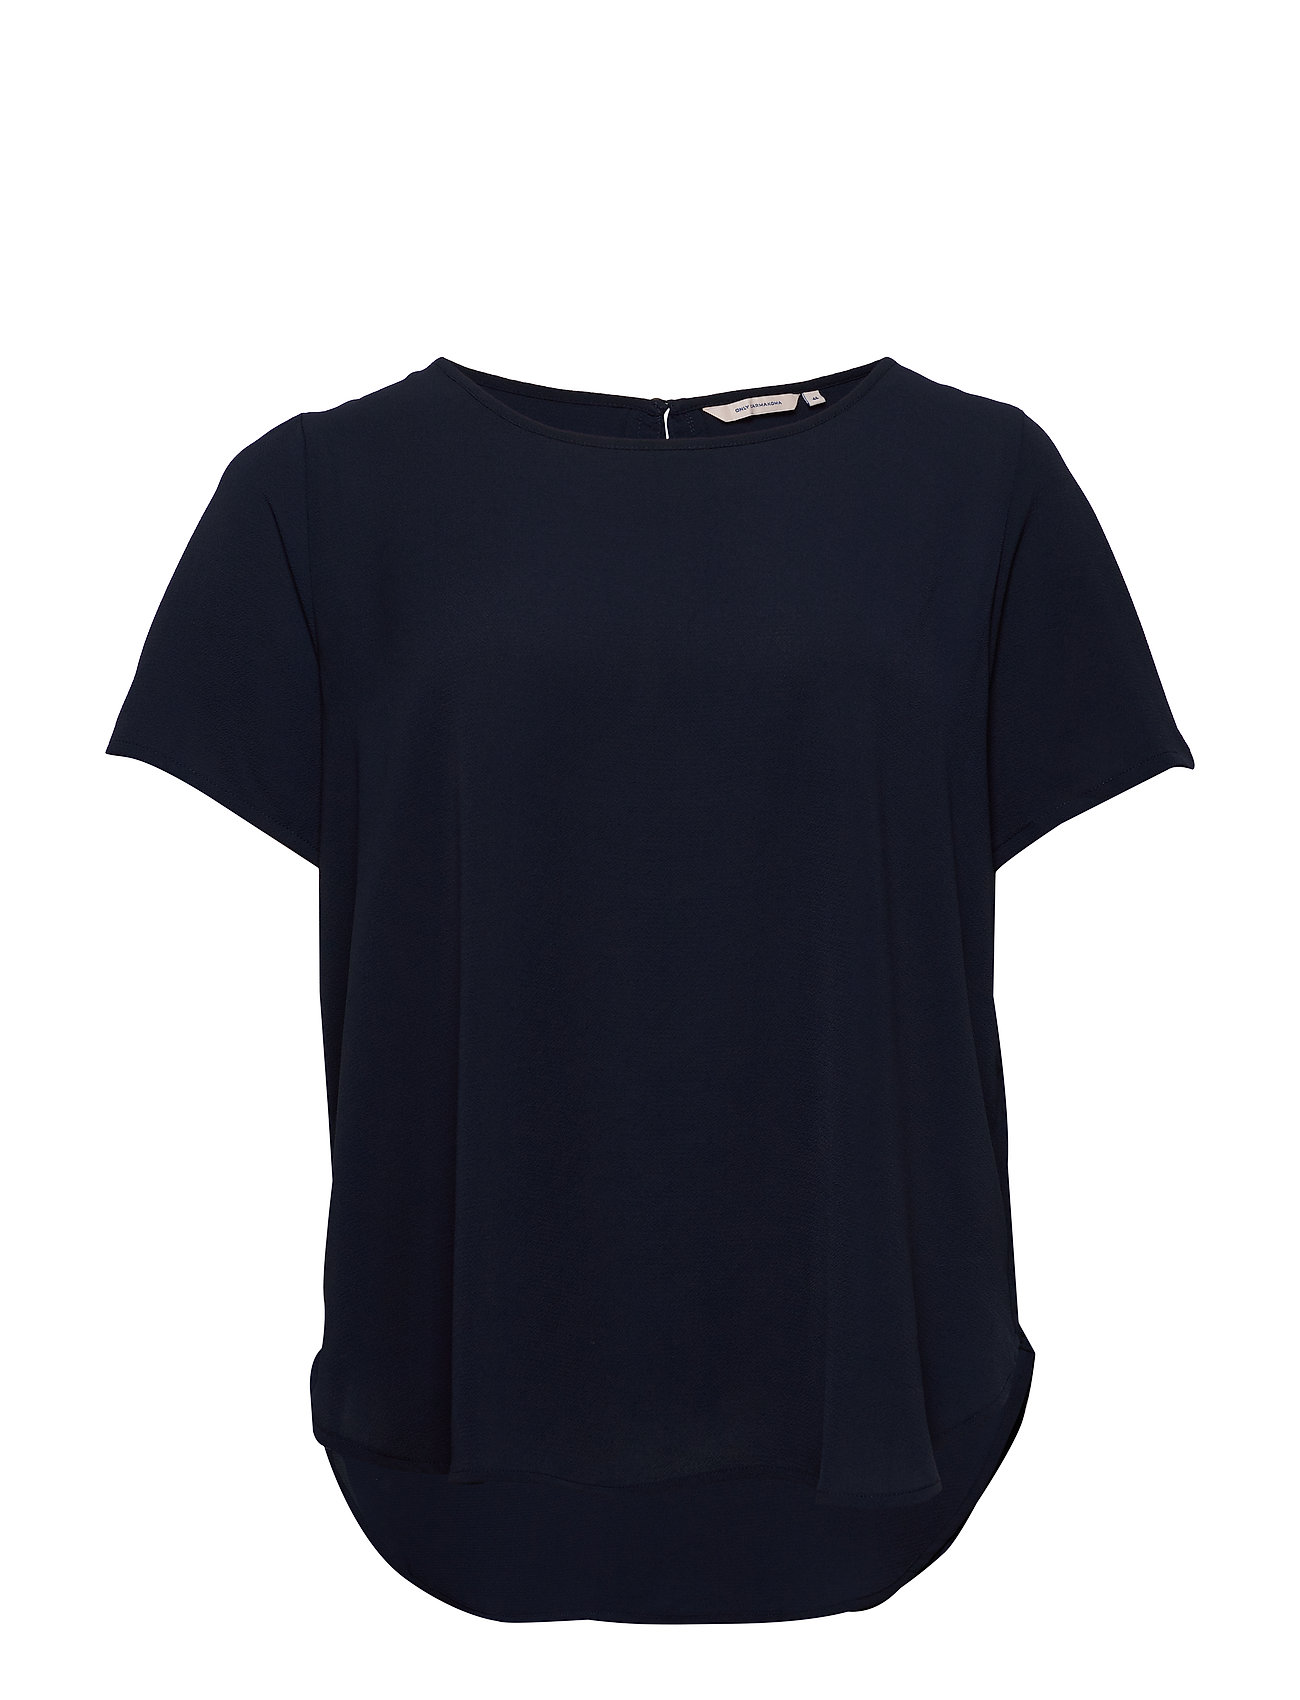 Image of Carluxcam Ss Top Solid T-shirt Top Blå ONLY Carmakoma (3346637741)